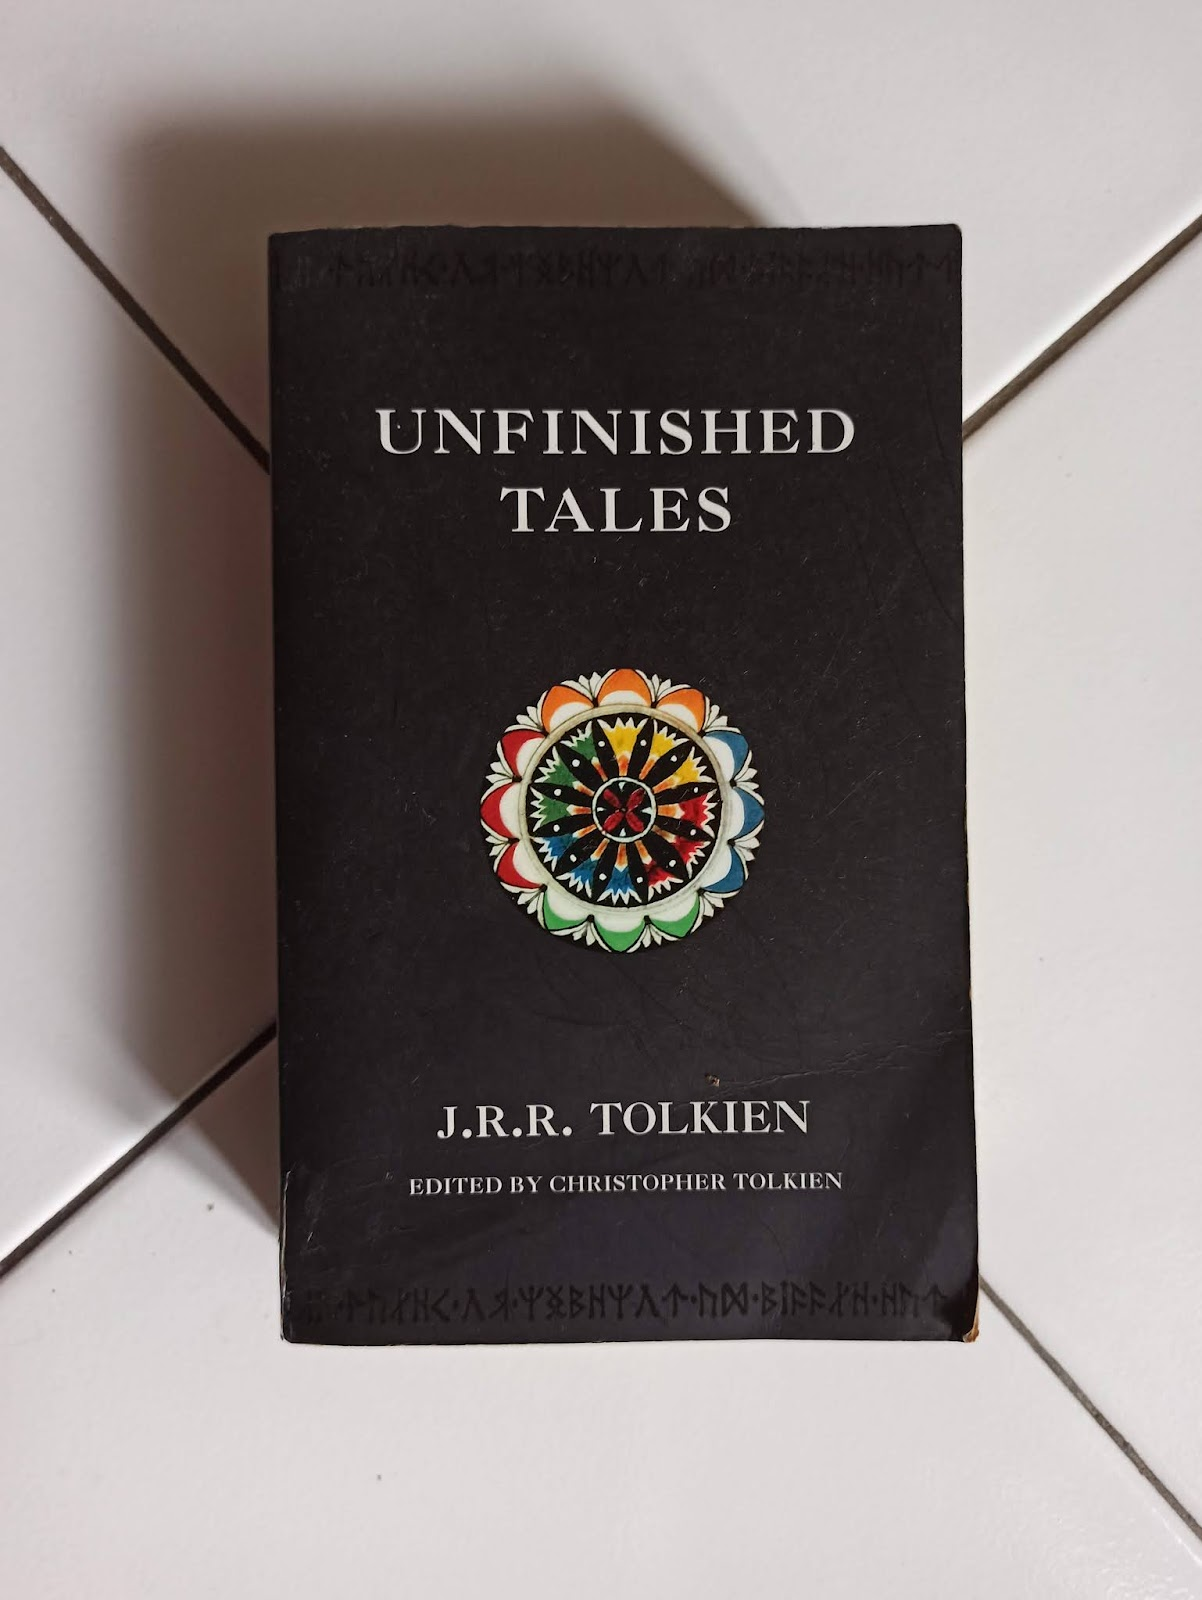 Unfinished Tales by JRR Tolkien